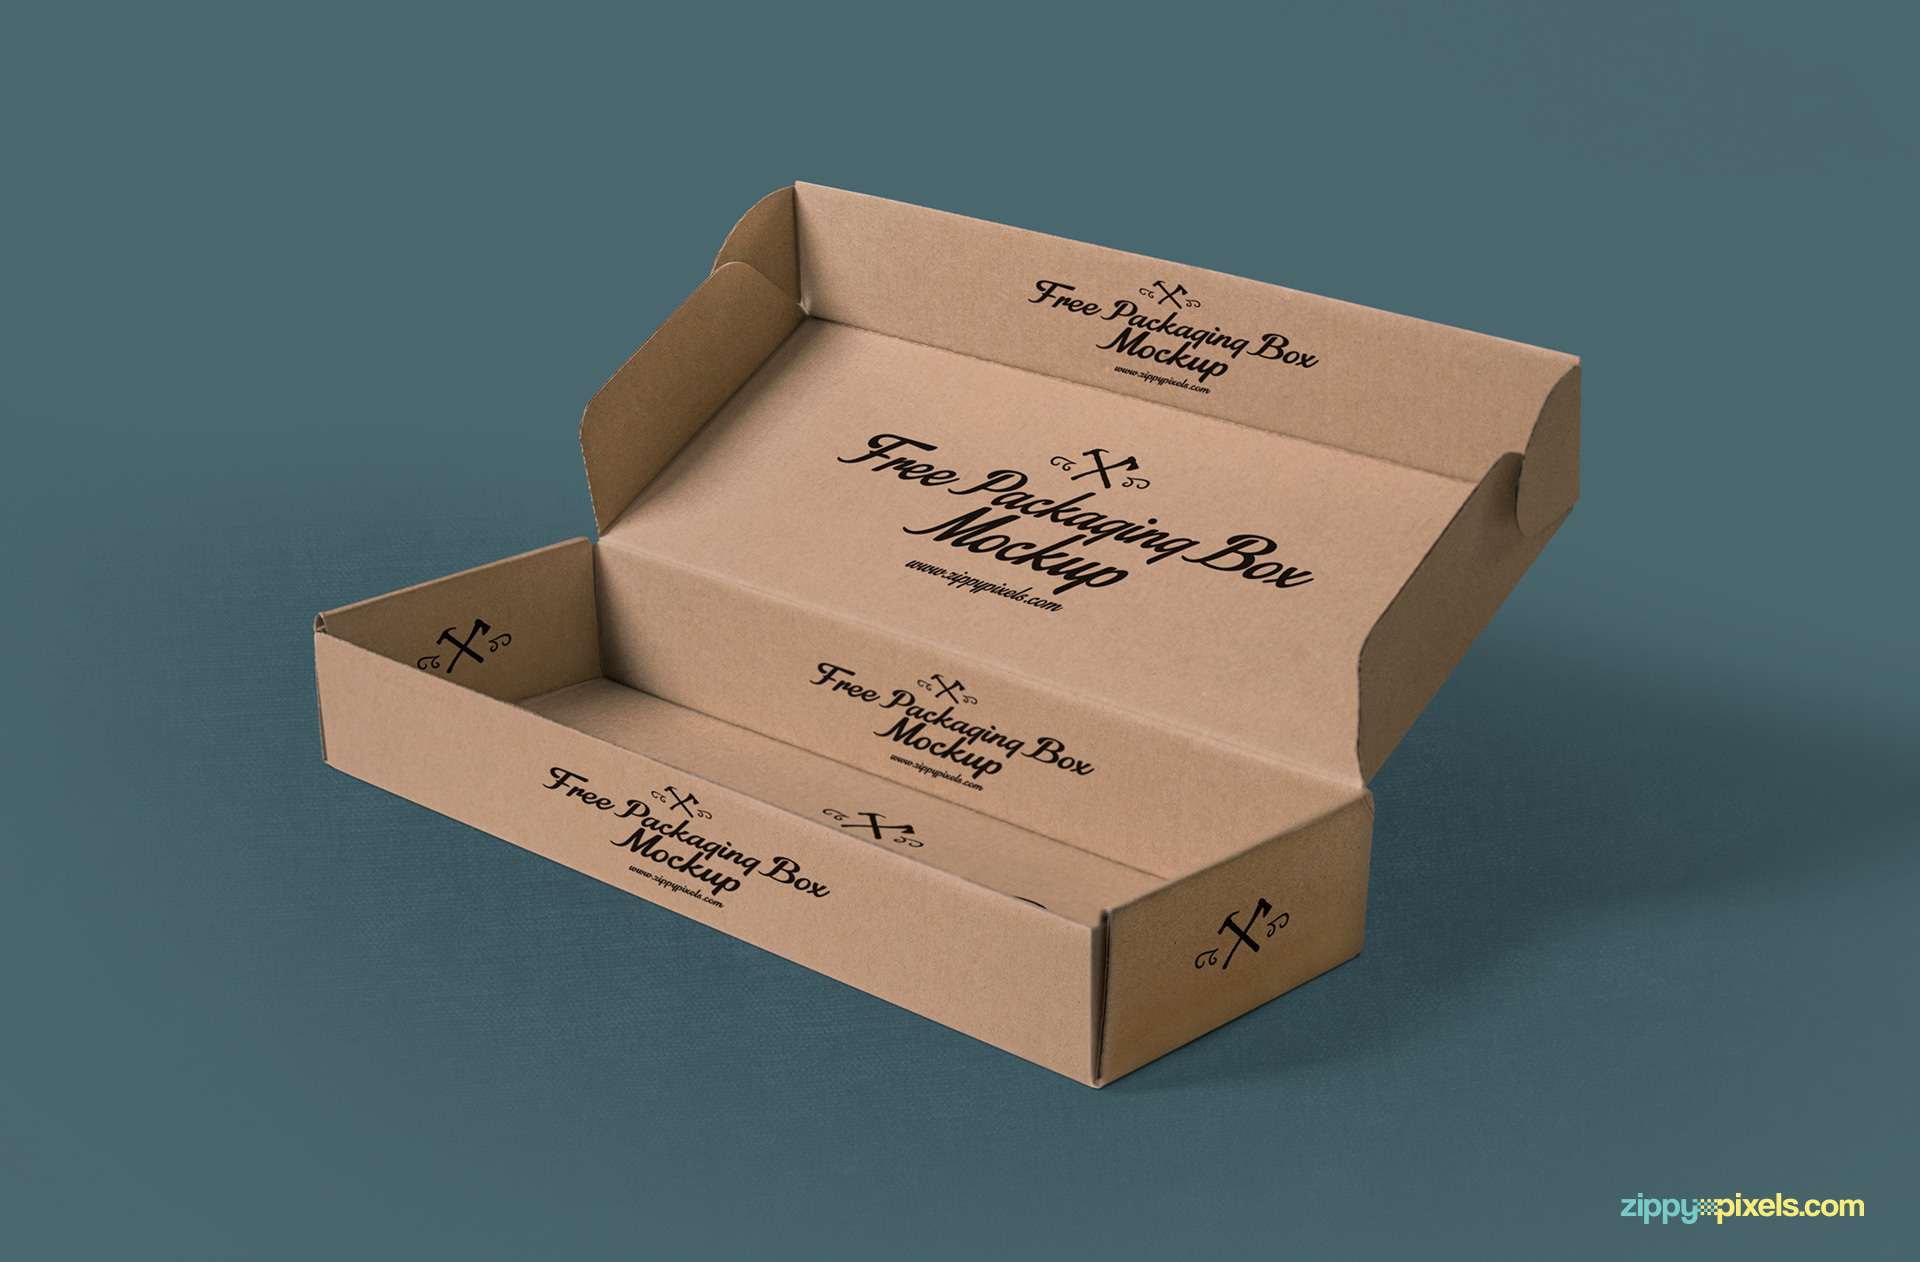 packaging-box-mockup-open-view